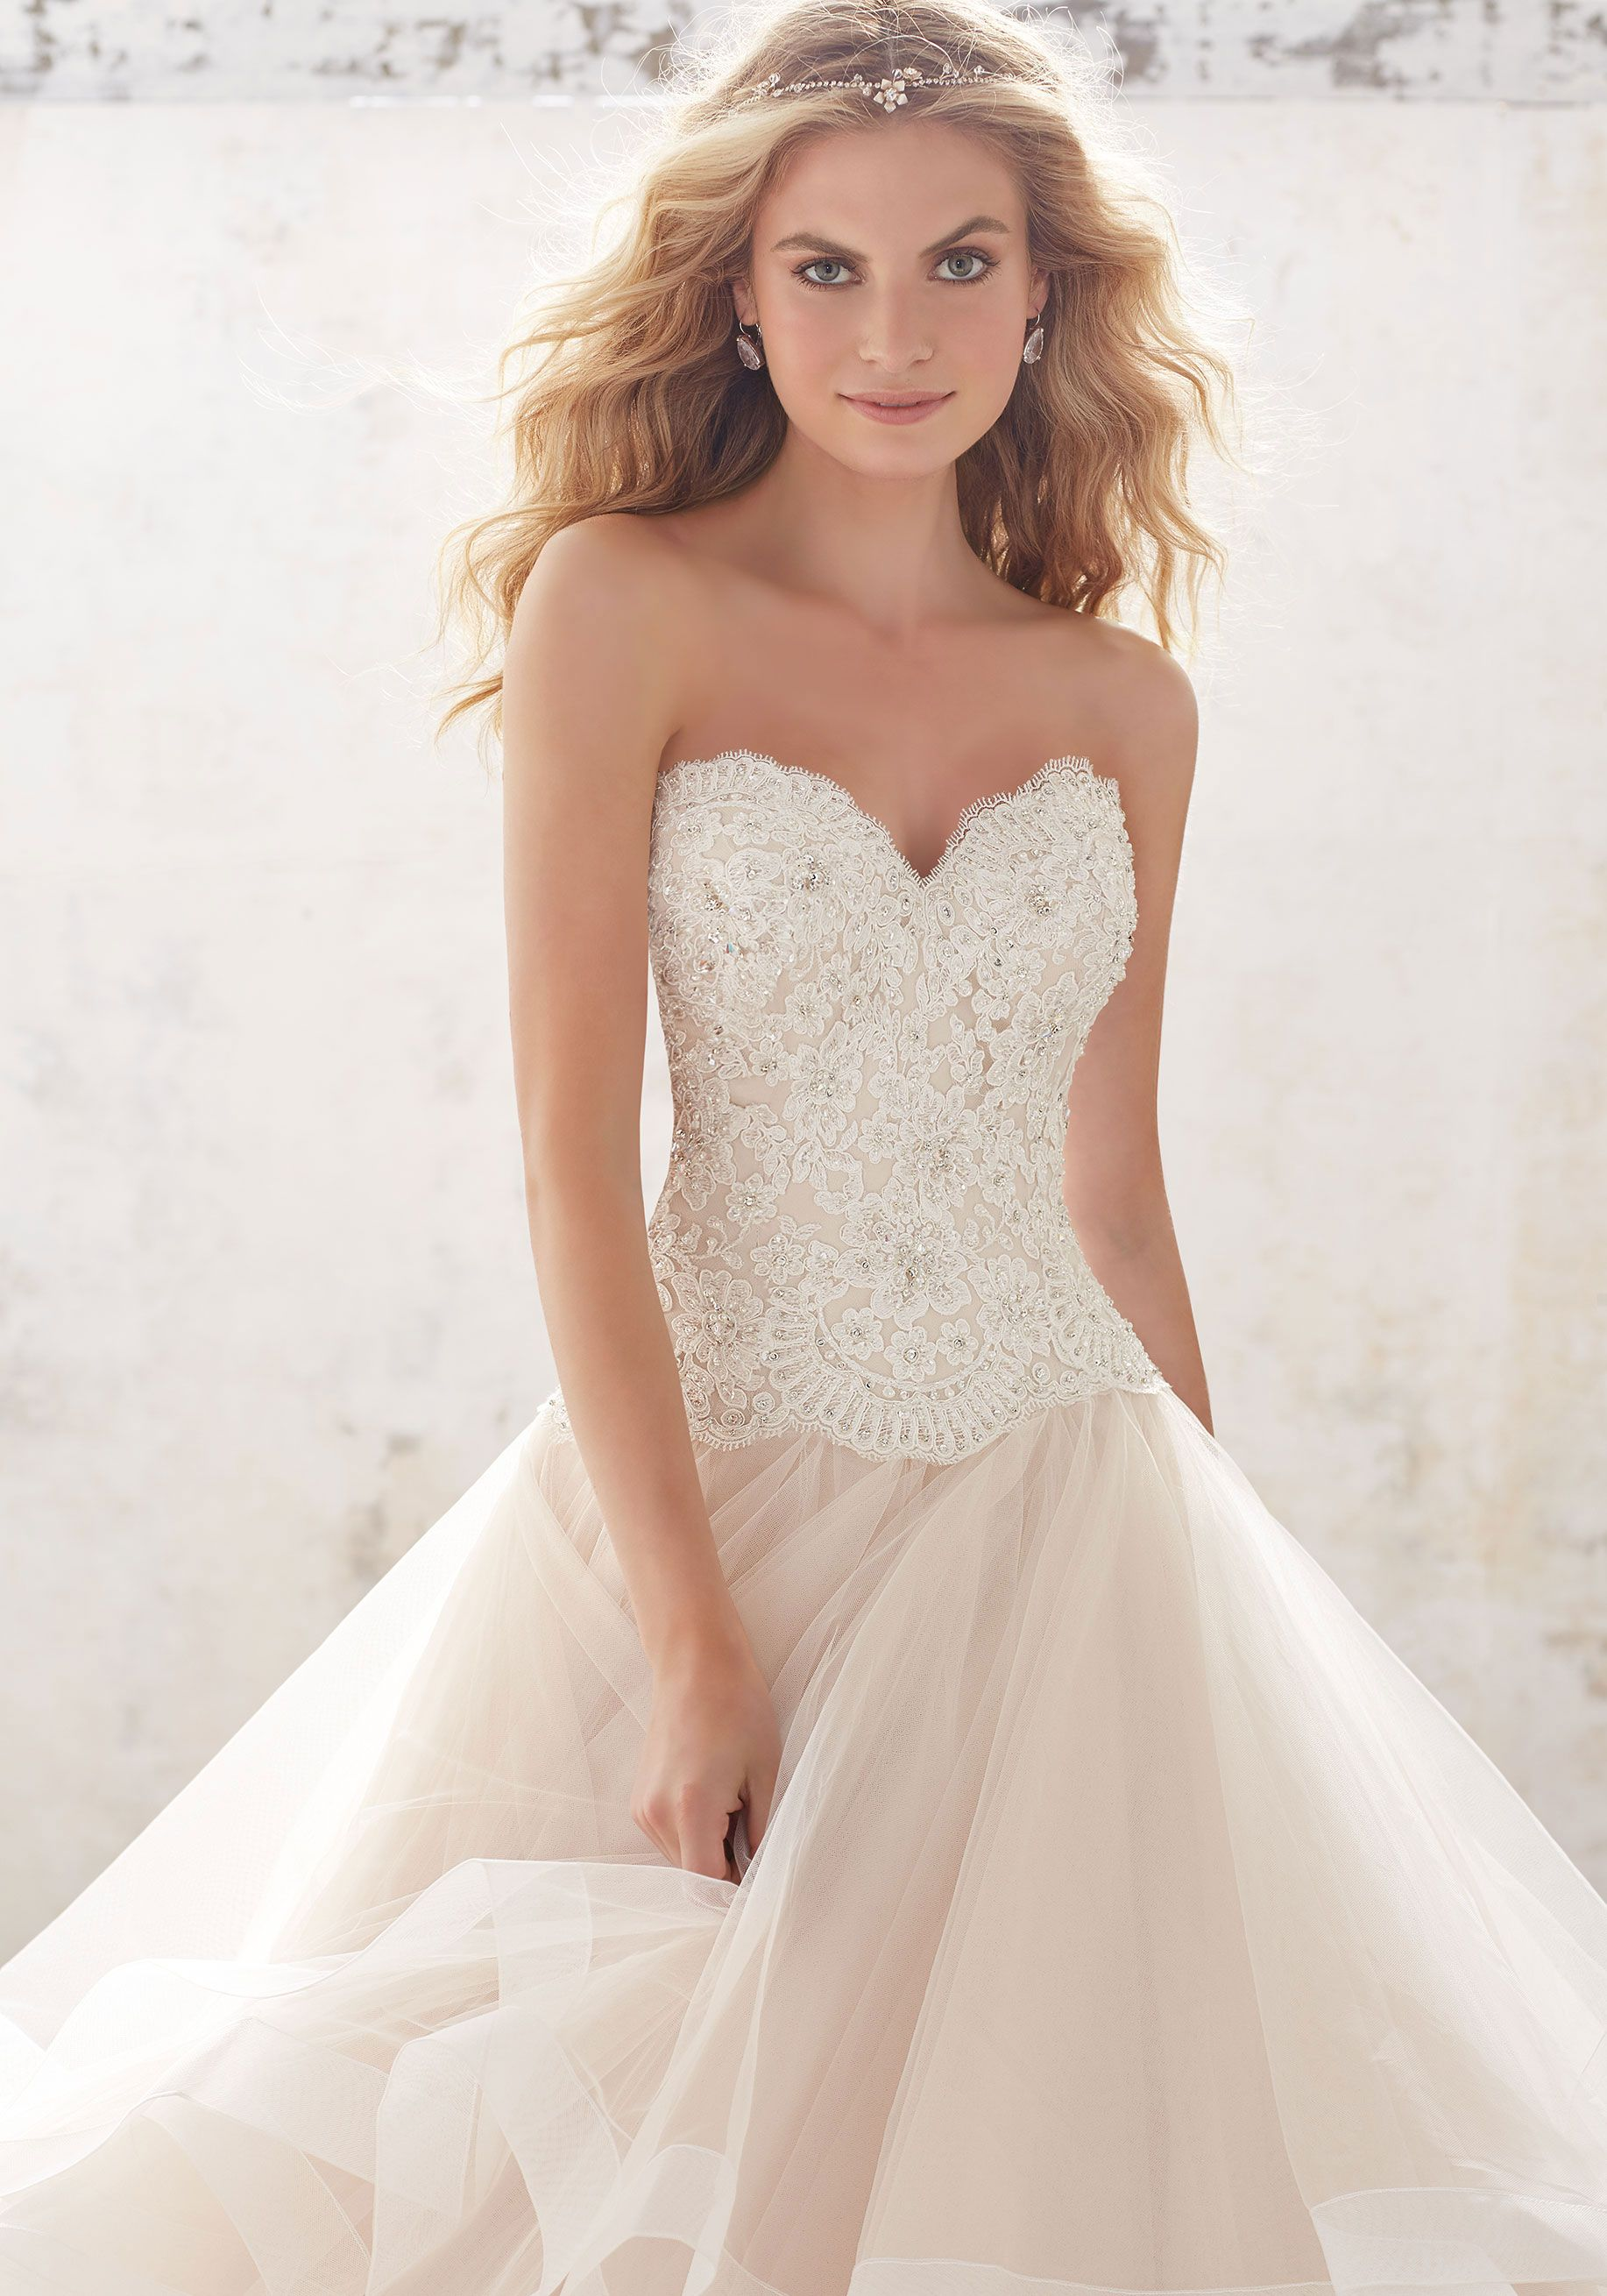 Mori lee madeline gardner wedding dress   Wedding Dresses and Bridal Gowns by Morilee designed by